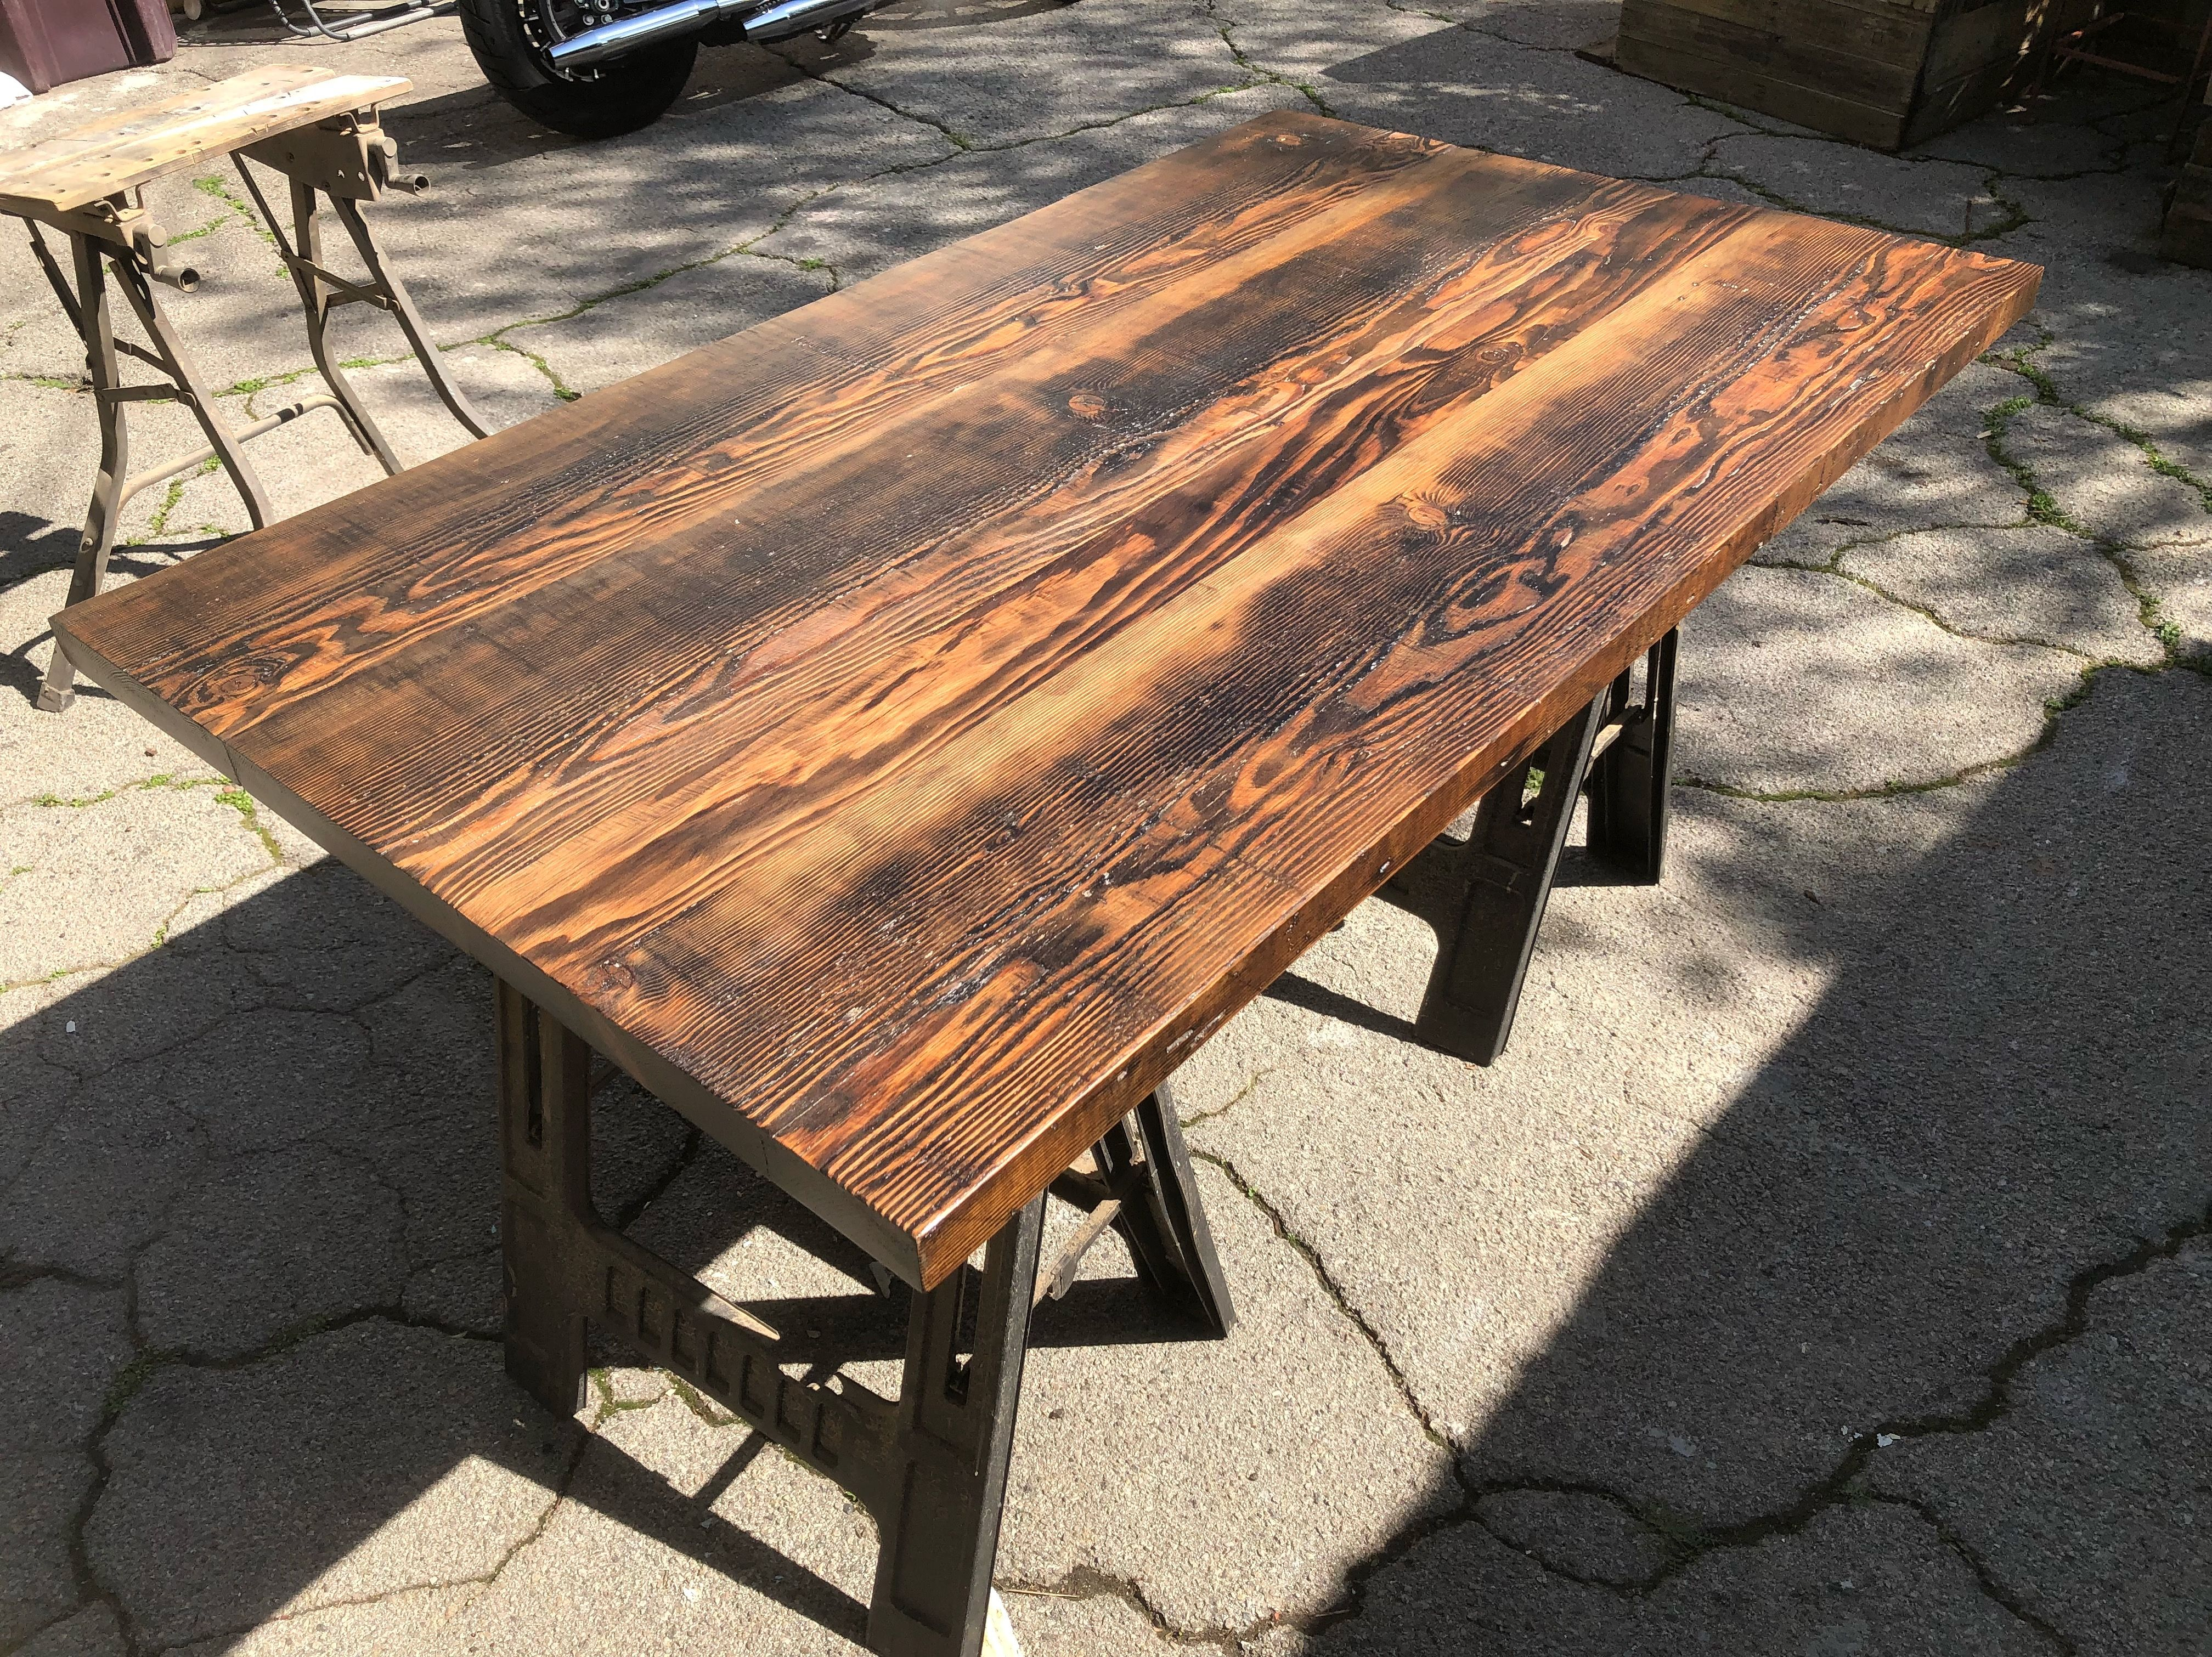 Done with stain and poly just curing the dark walnut stain turned